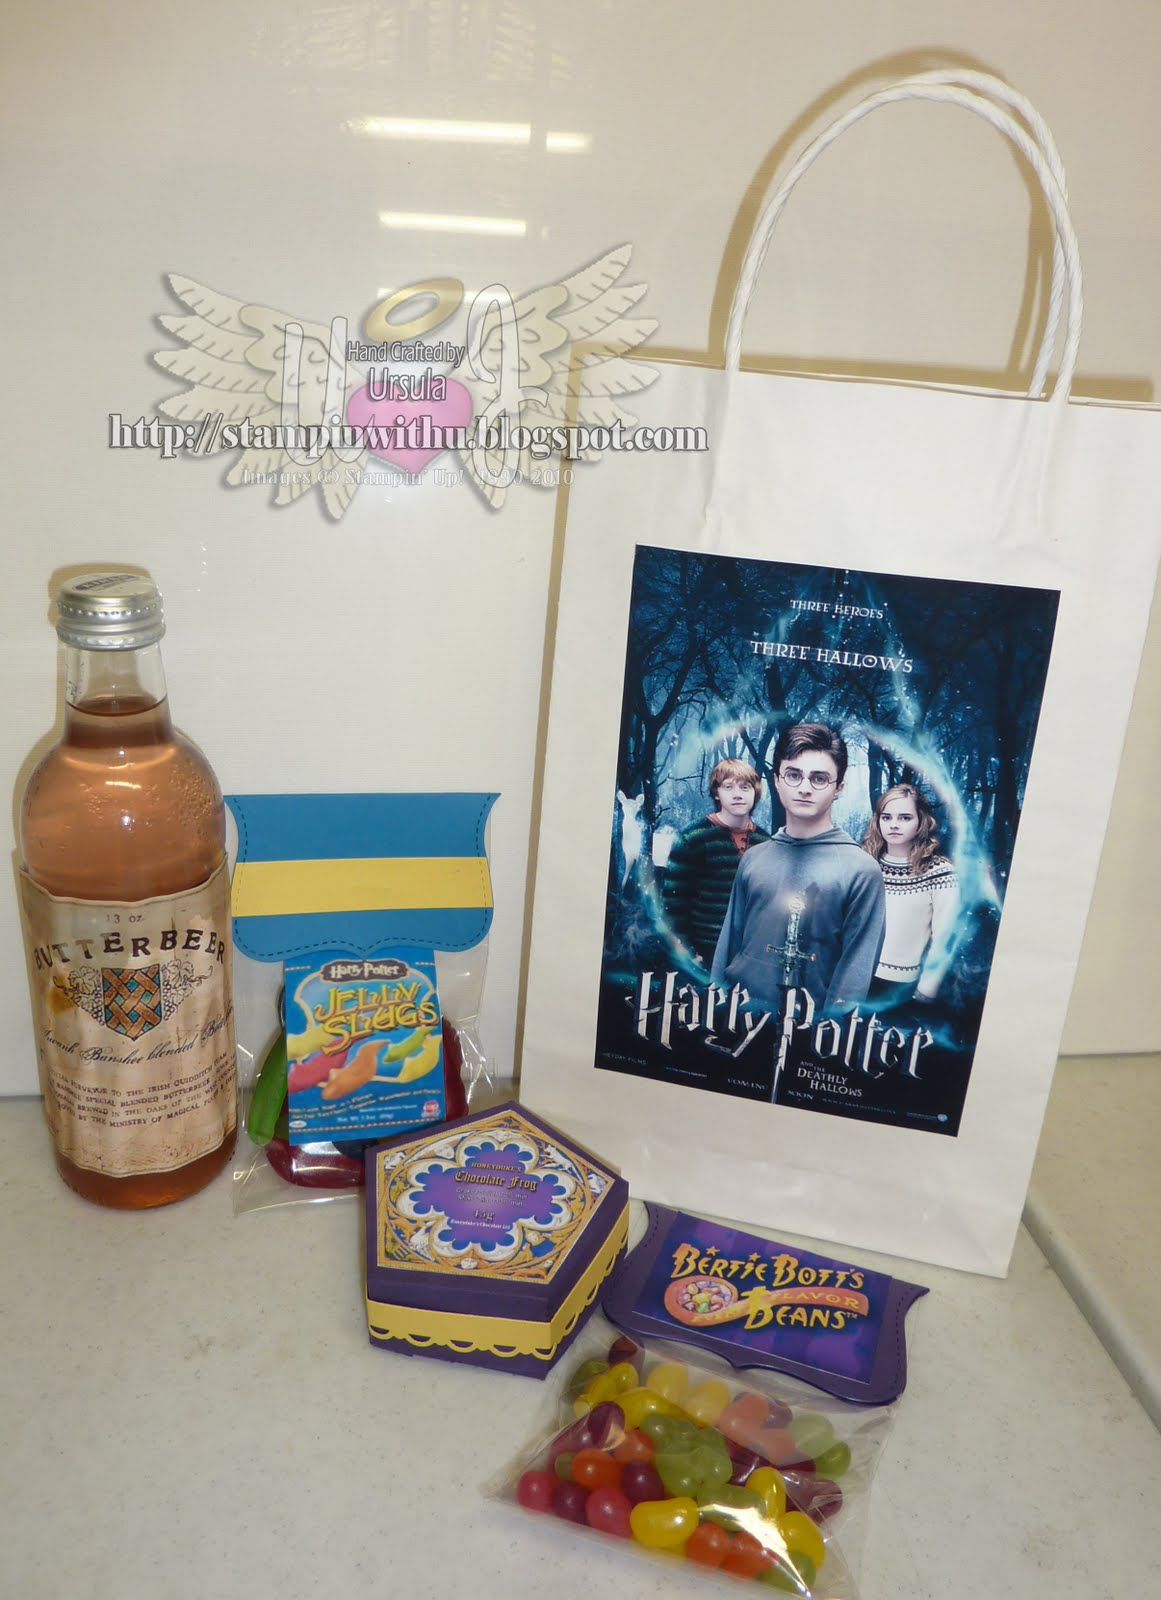 Stampin With U Harry Potter Sweets With Stampin Up